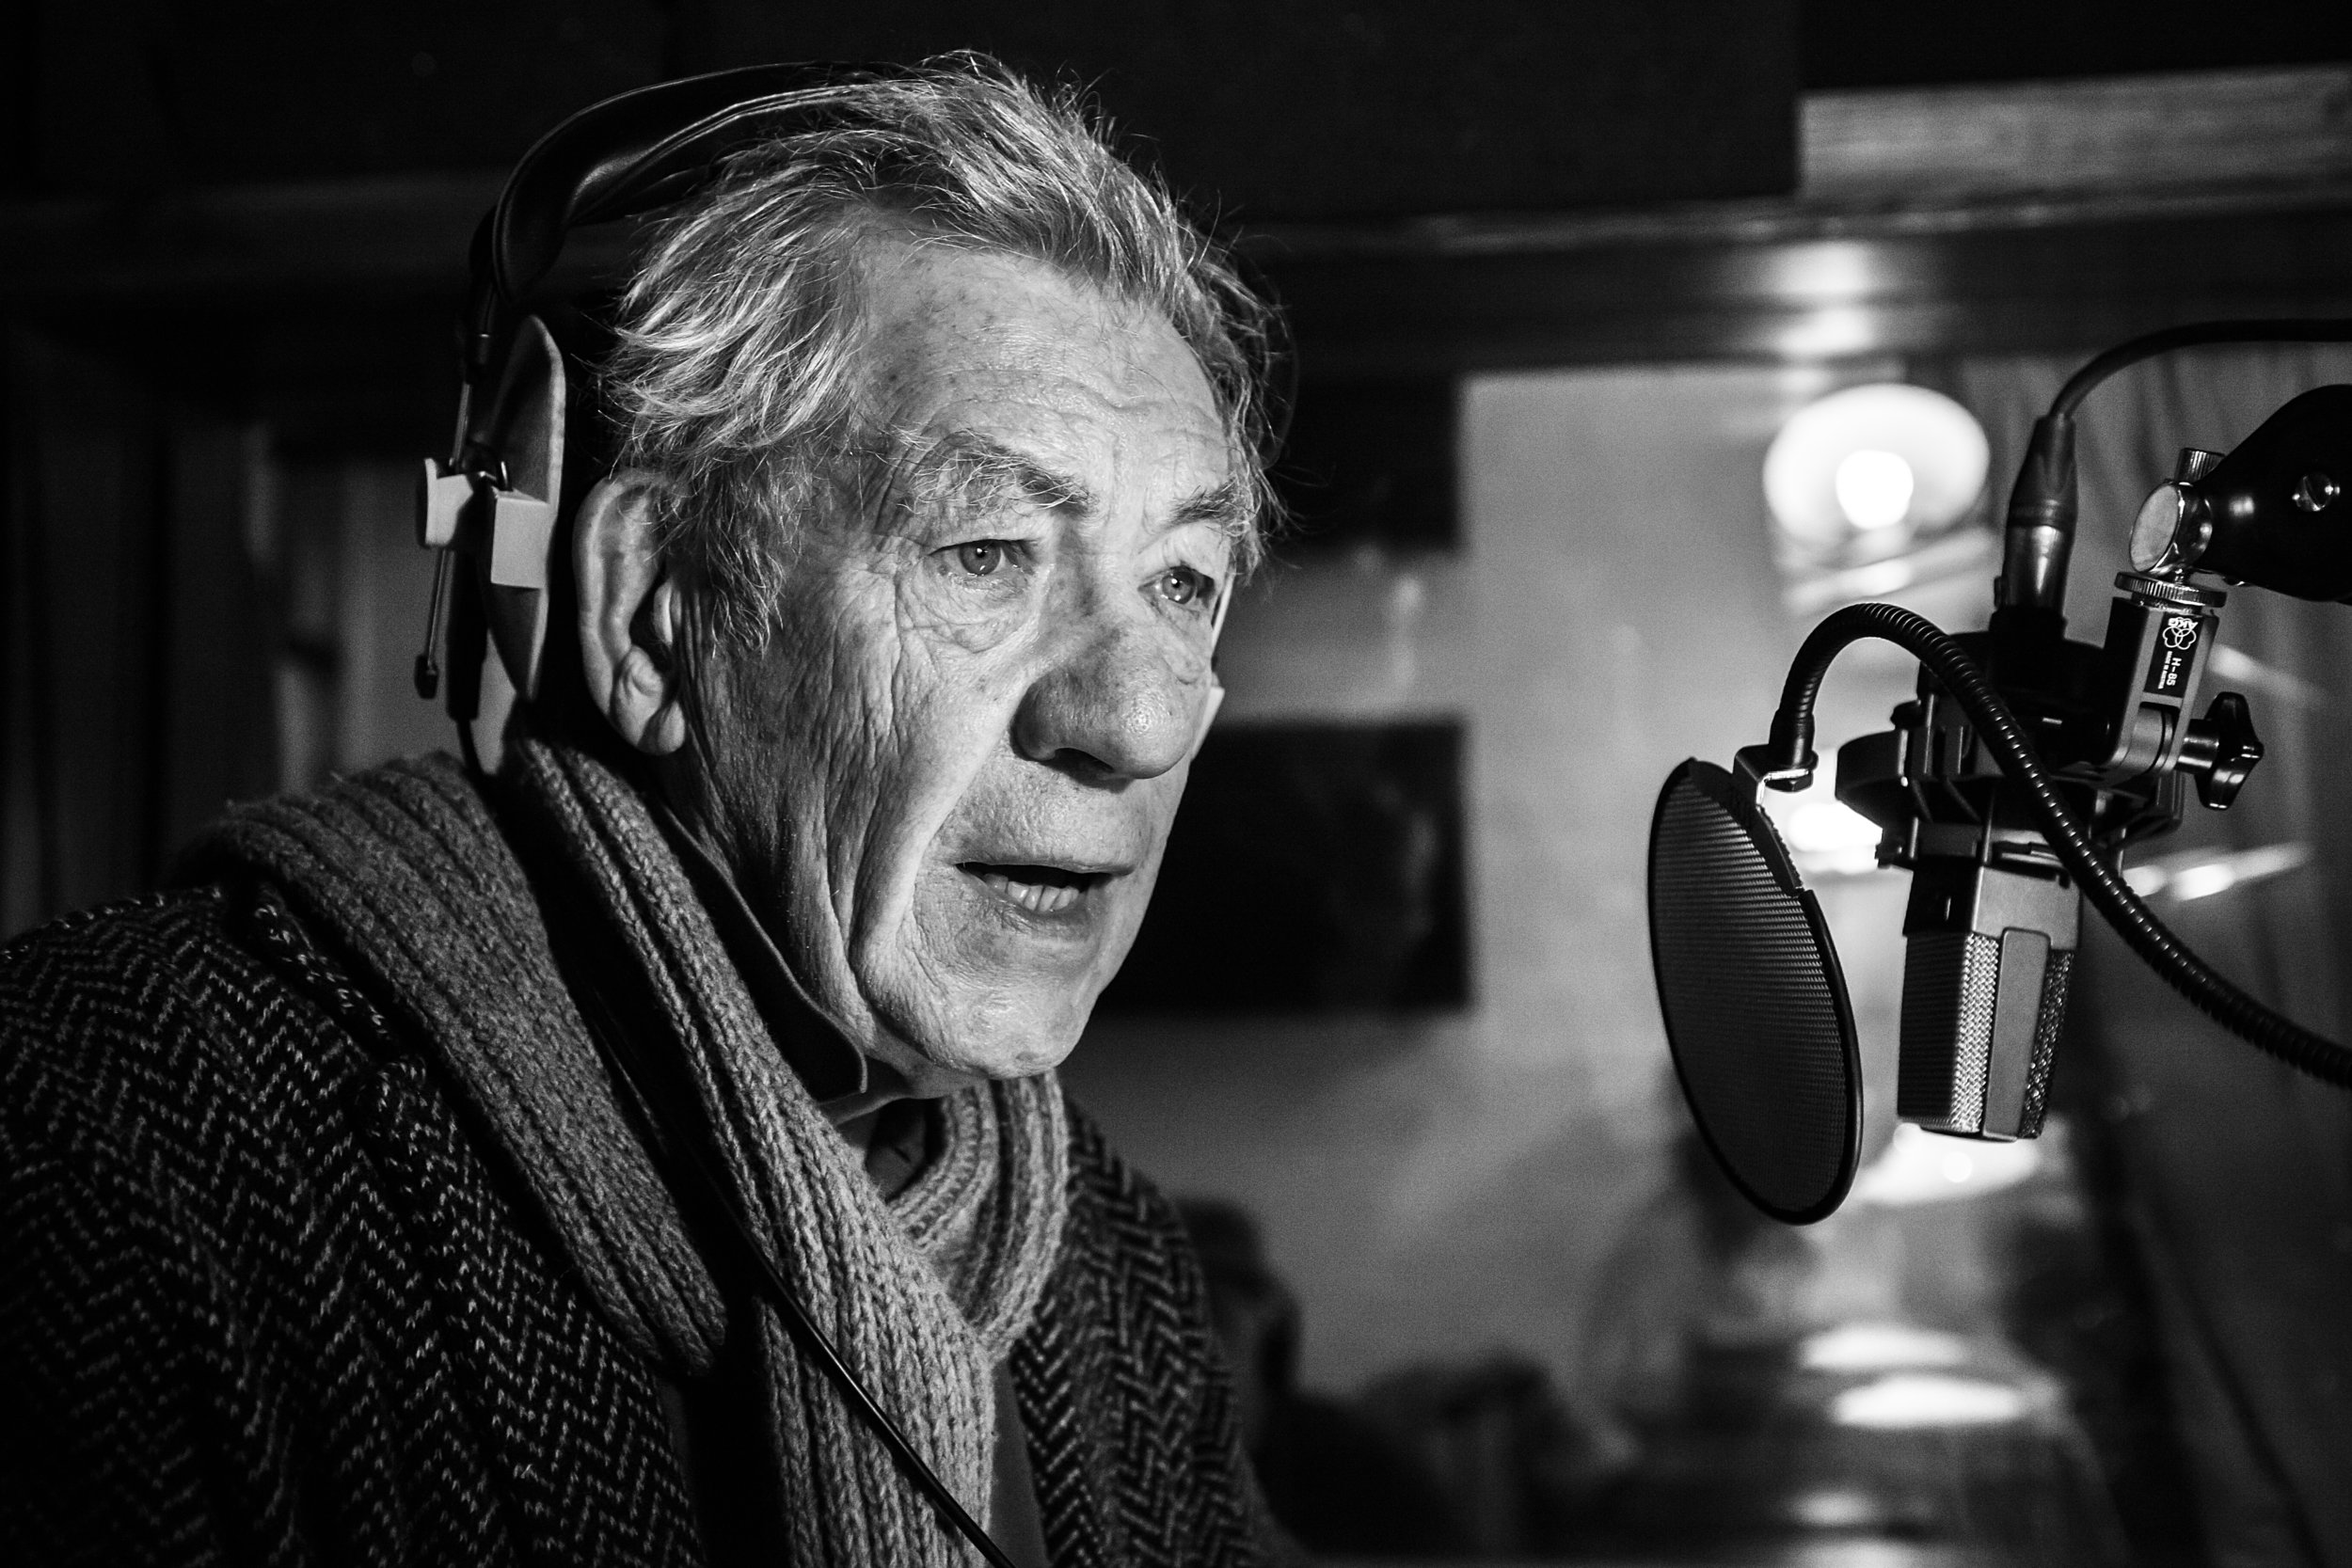 Sir Ian mckellen for Sport relief